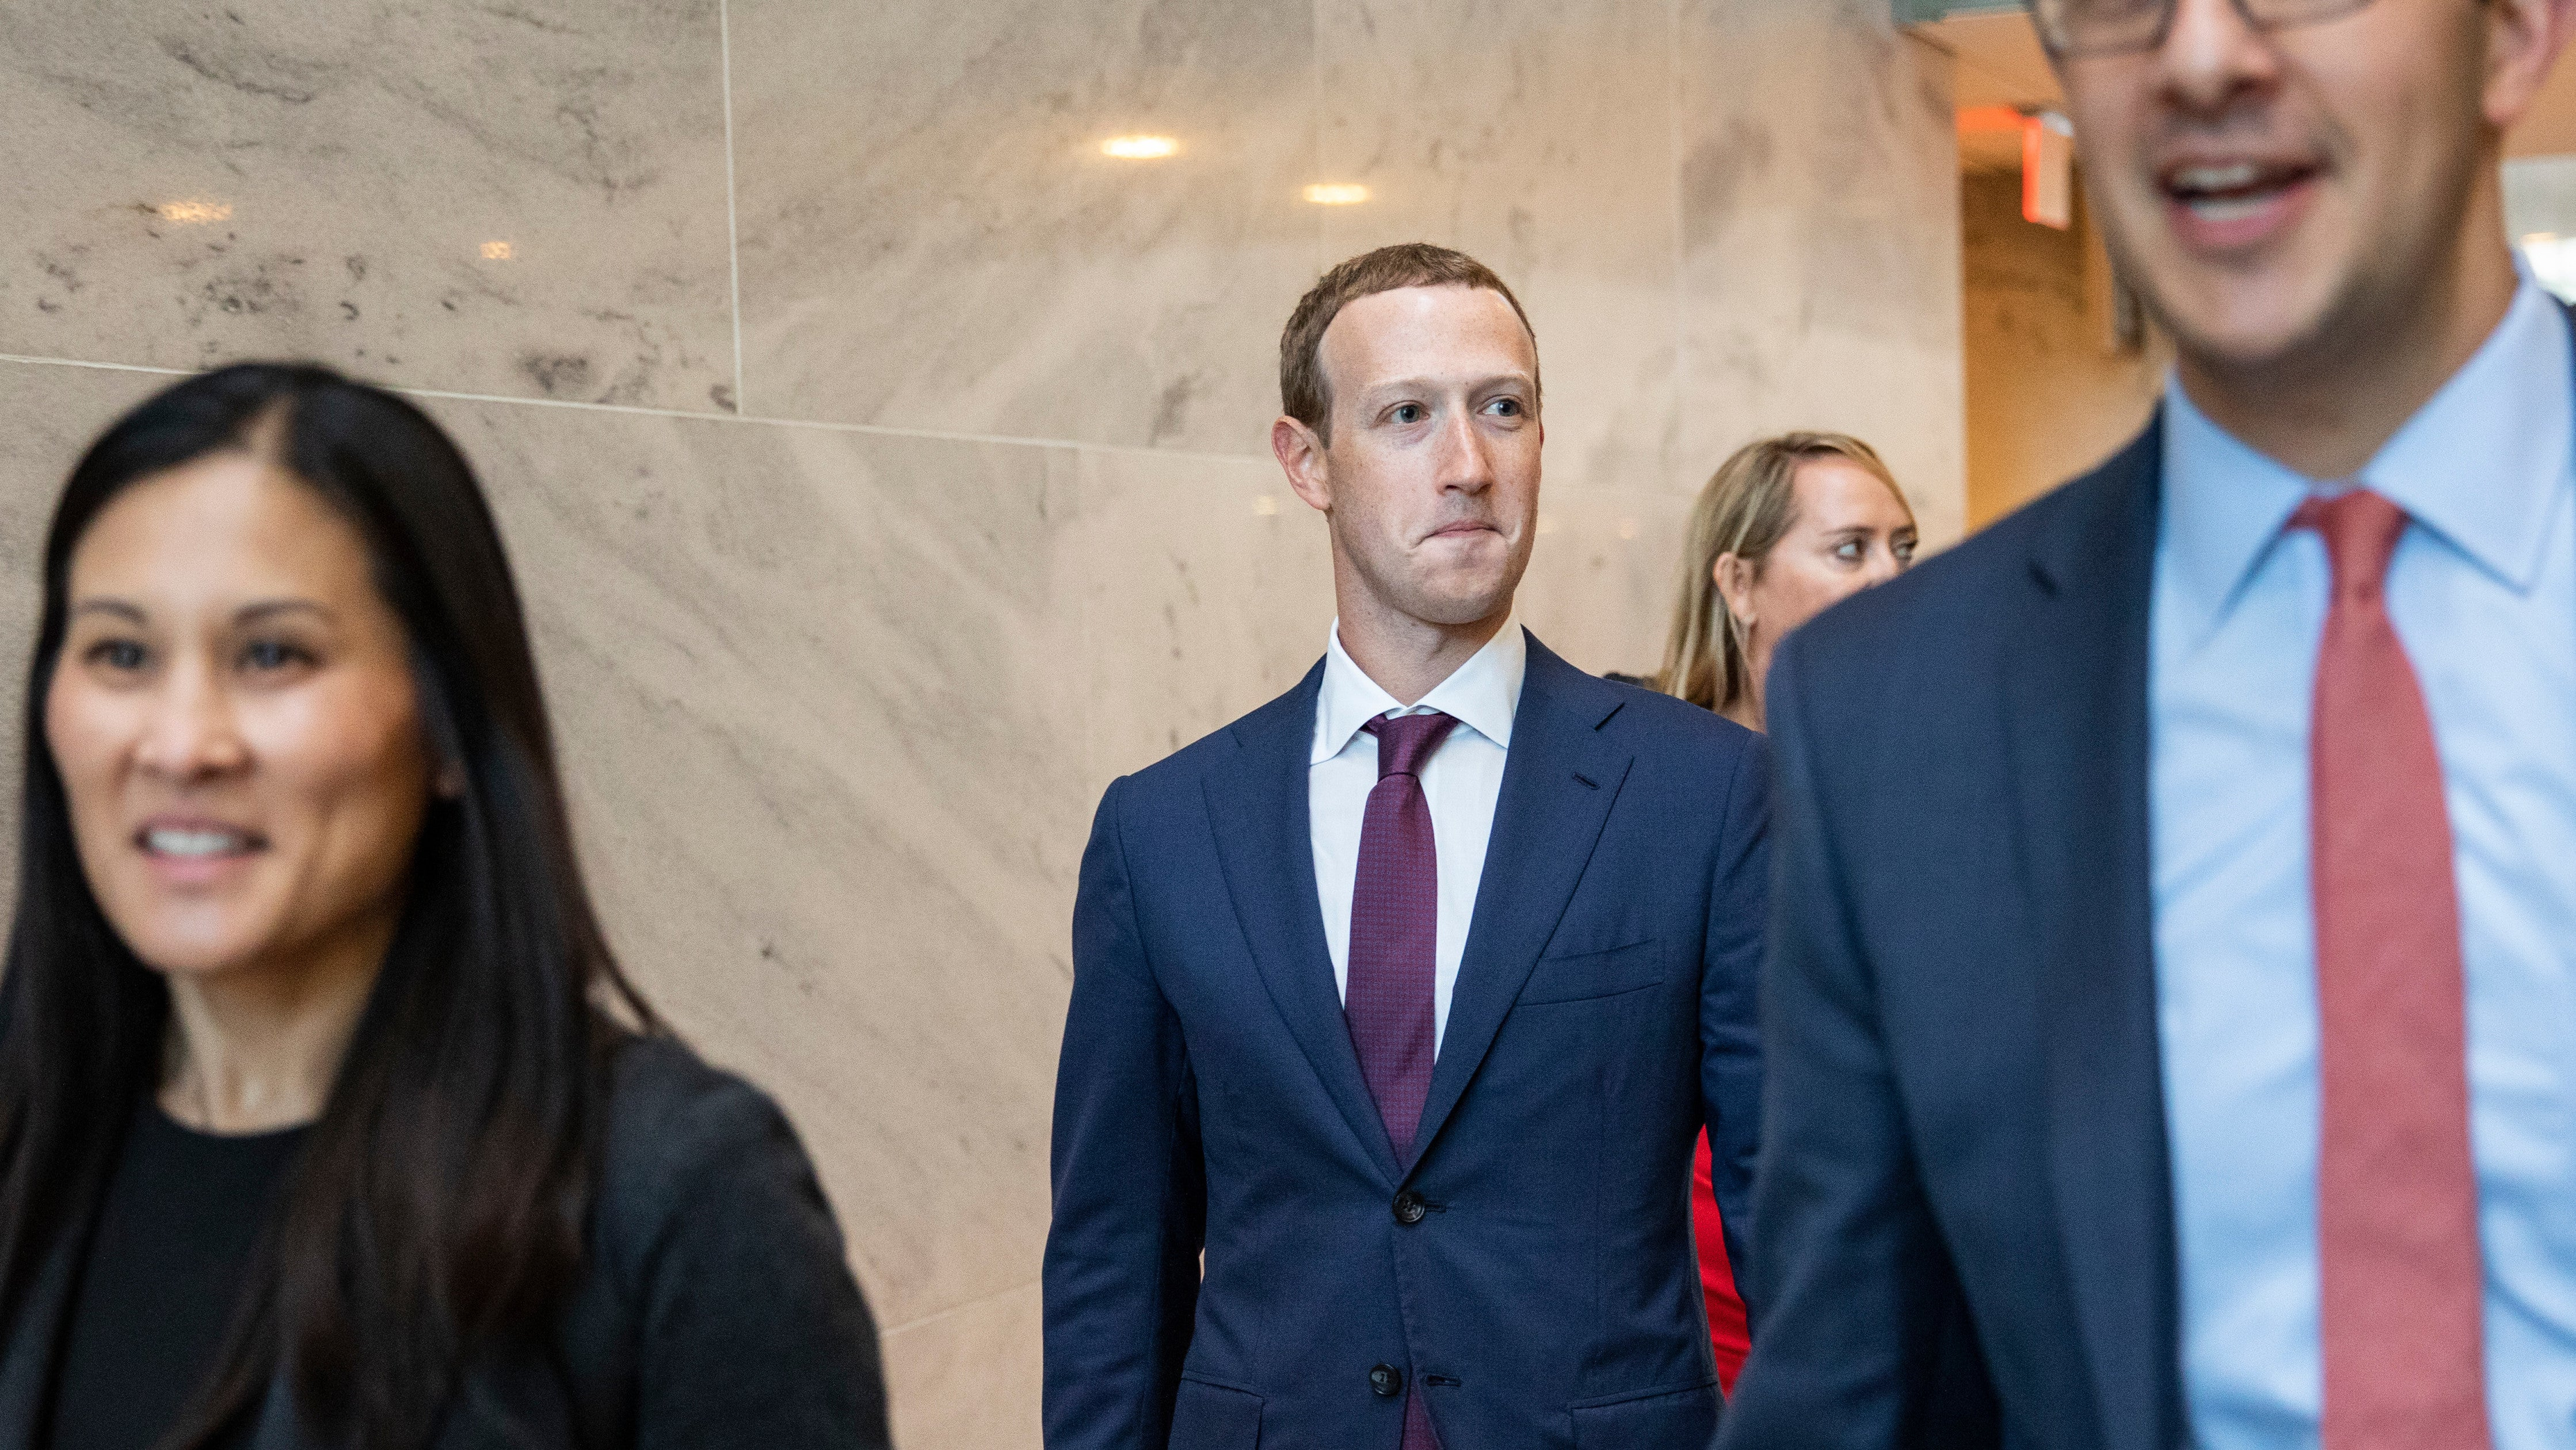 U.S. Senators Warn Visa, Mastercard To Think Twice About Joining Facebook's Cryptocurrency Scheme